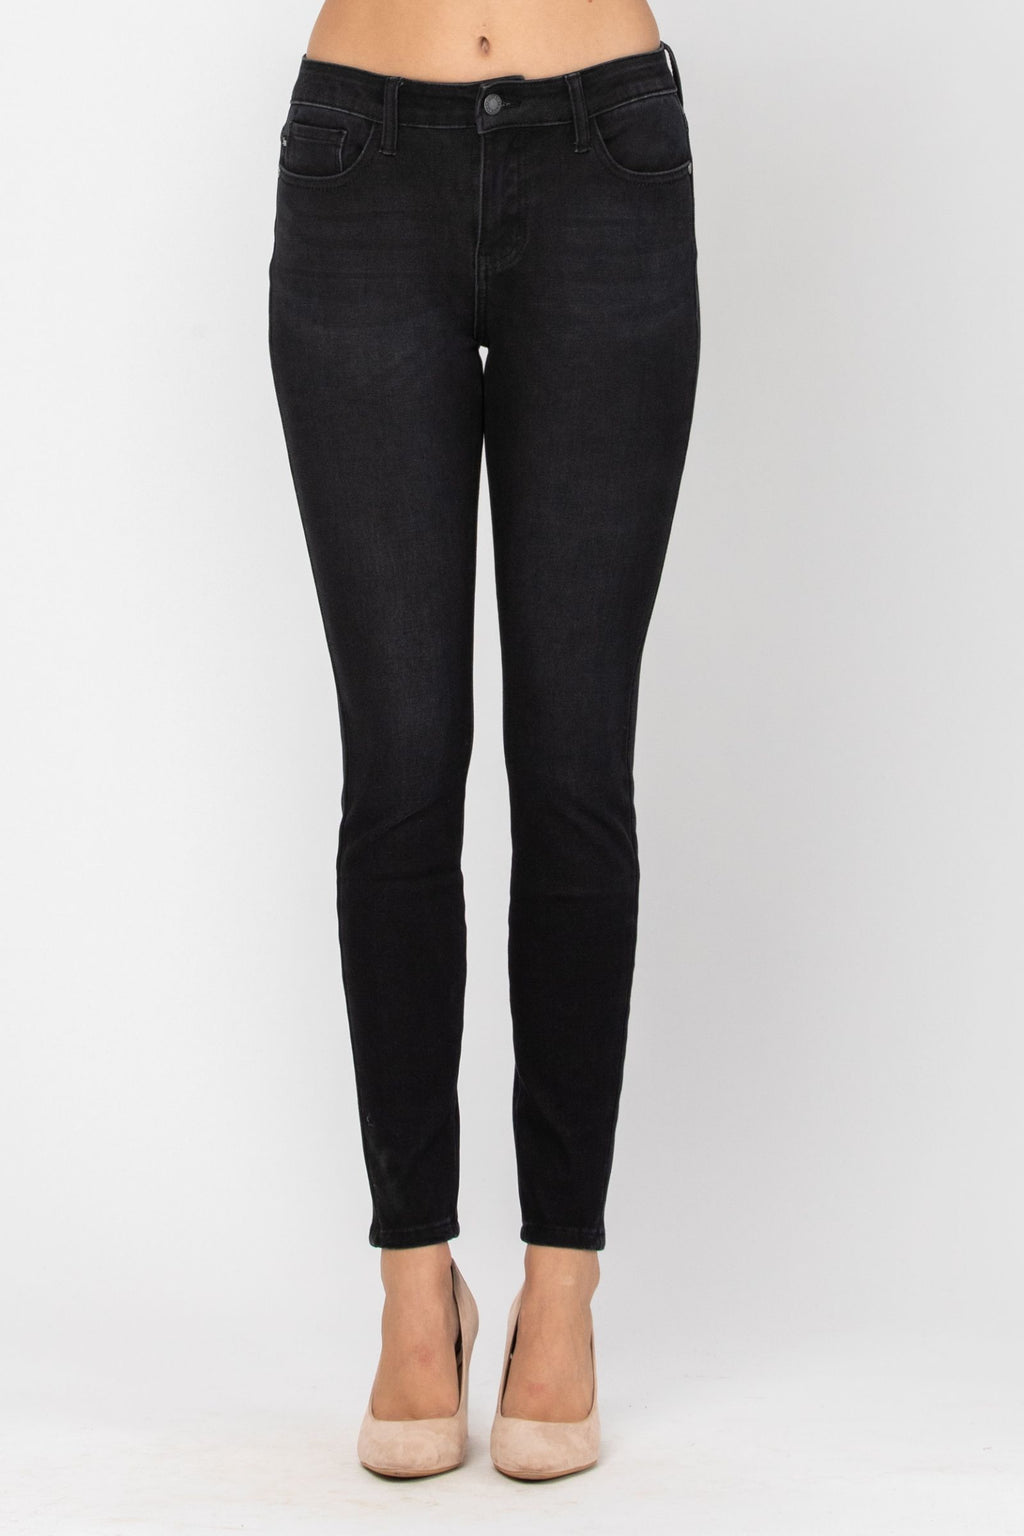 Judy Blue ThermaDenim Skinny Fit | Black - FINAL SALE